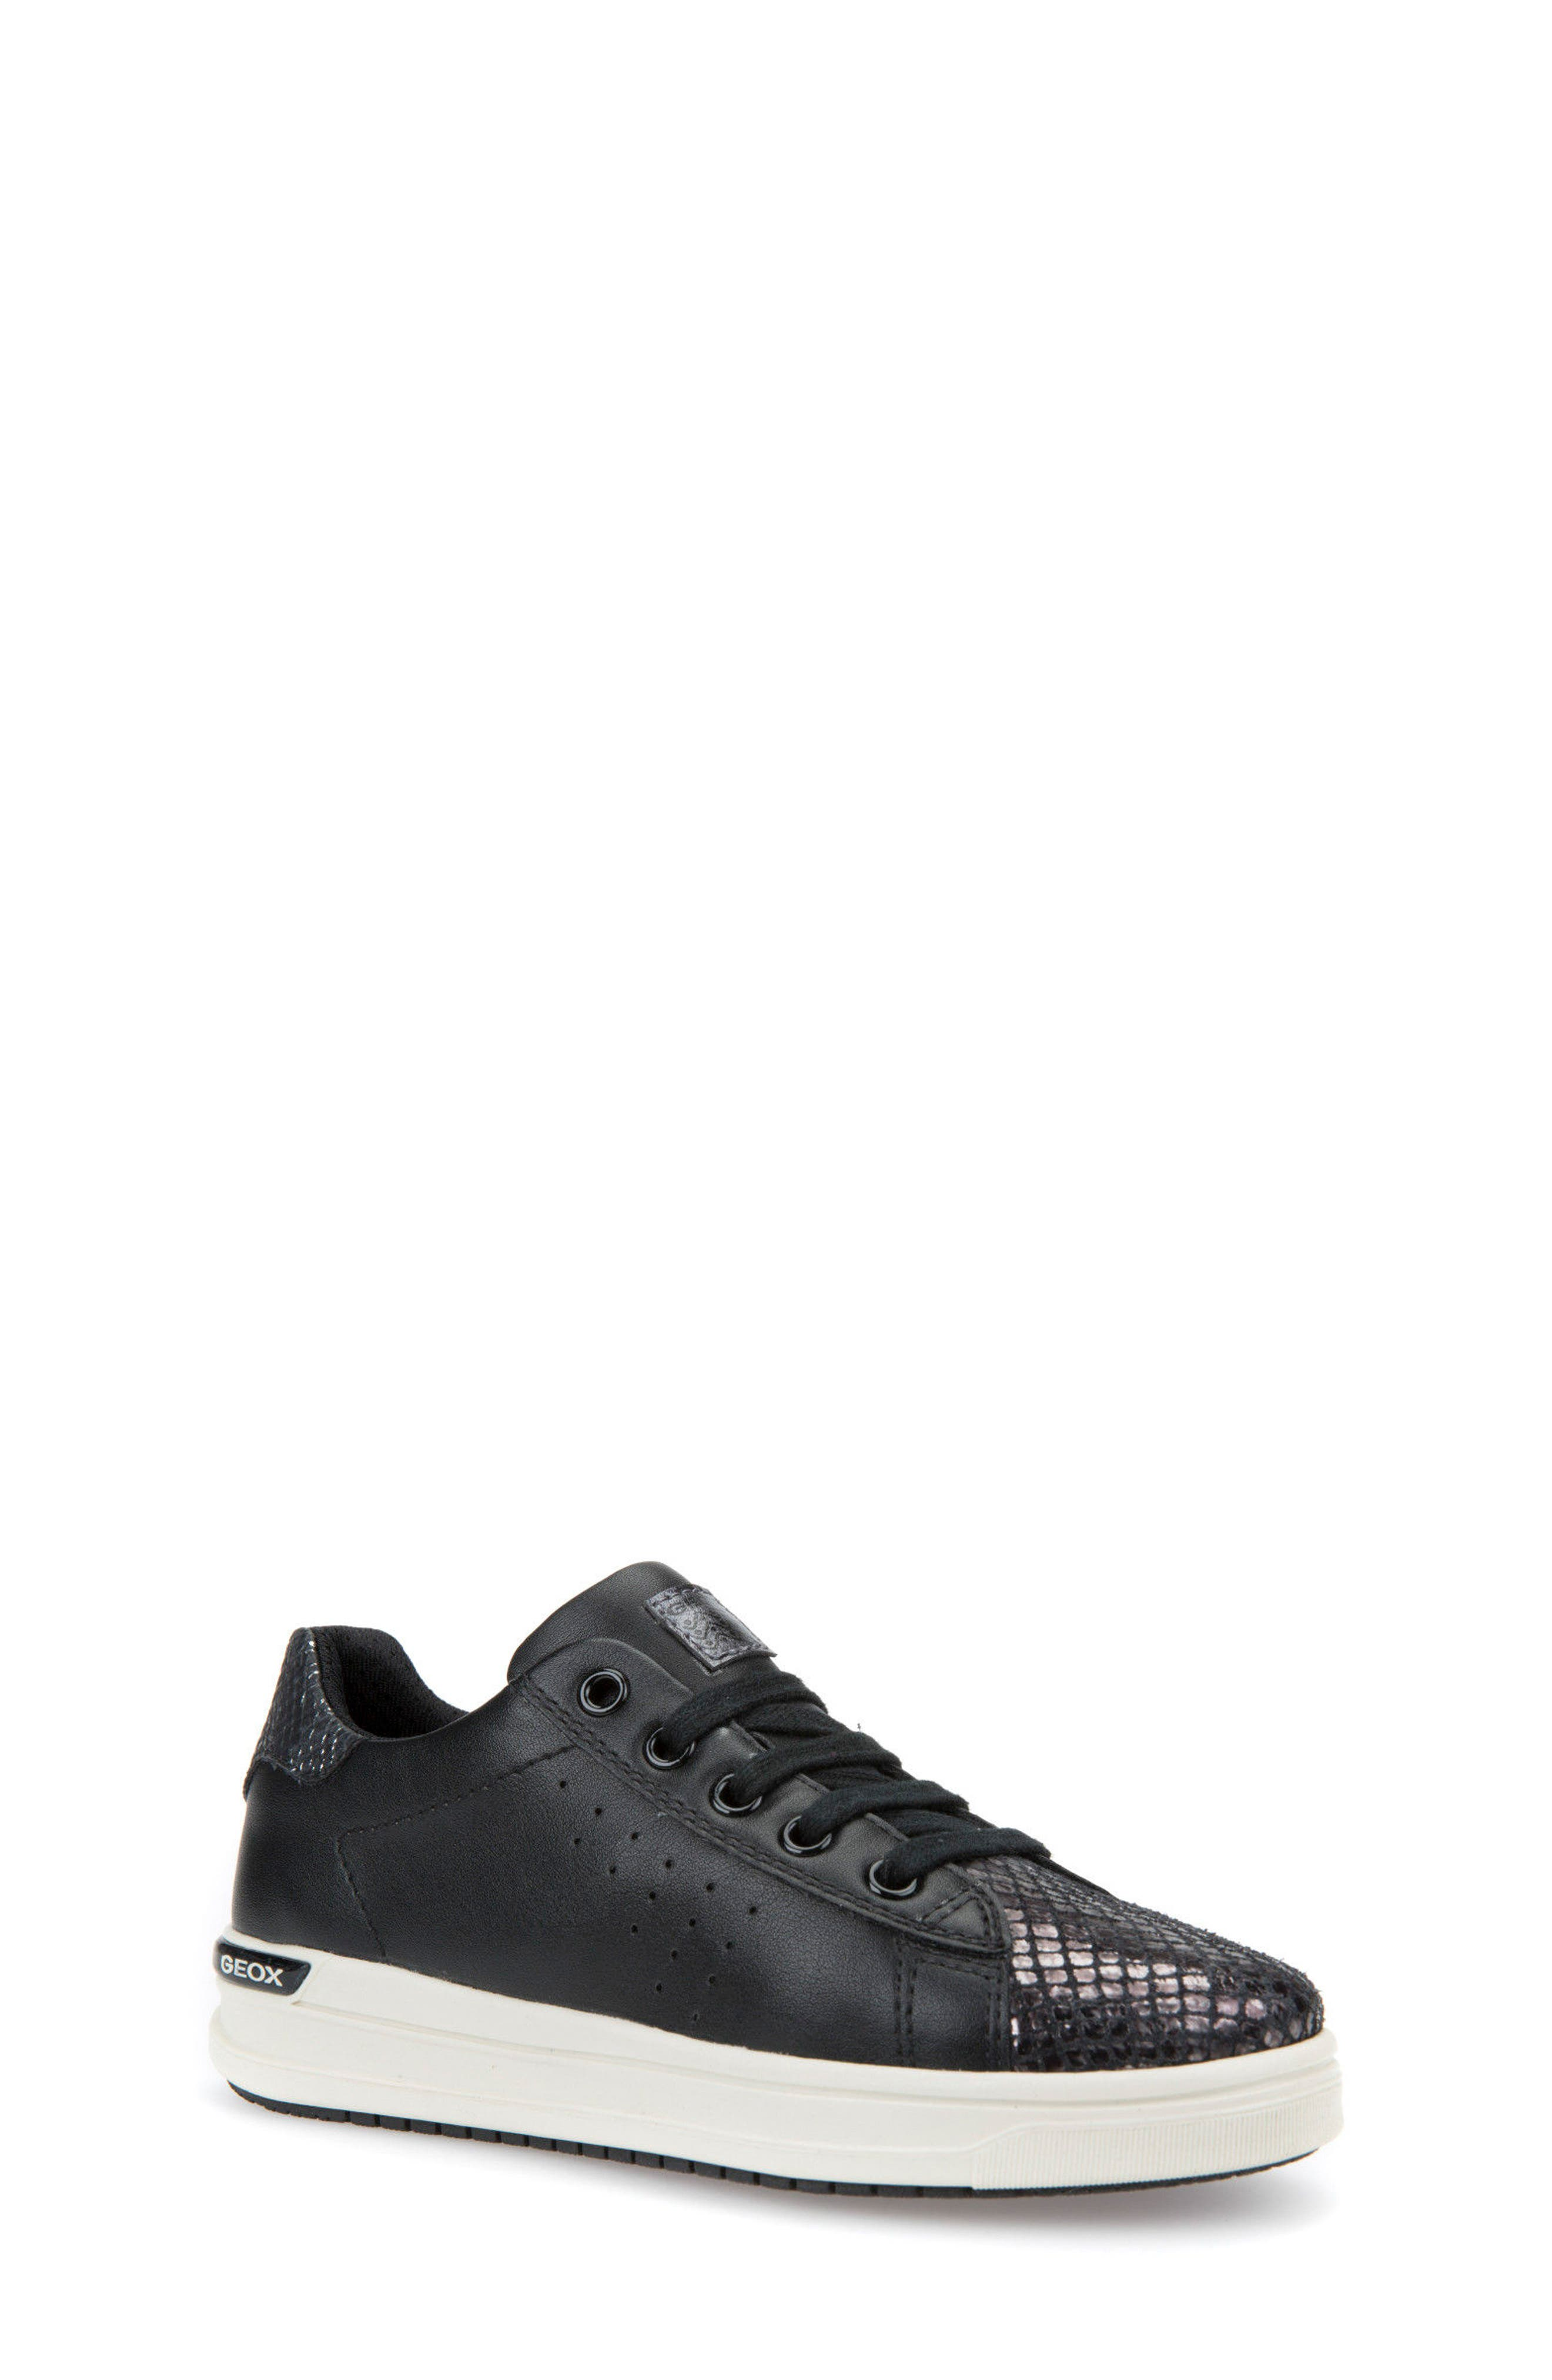 Cave Up Girl Low Top Sneaker,                             Main thumbnail 1, color,                             001